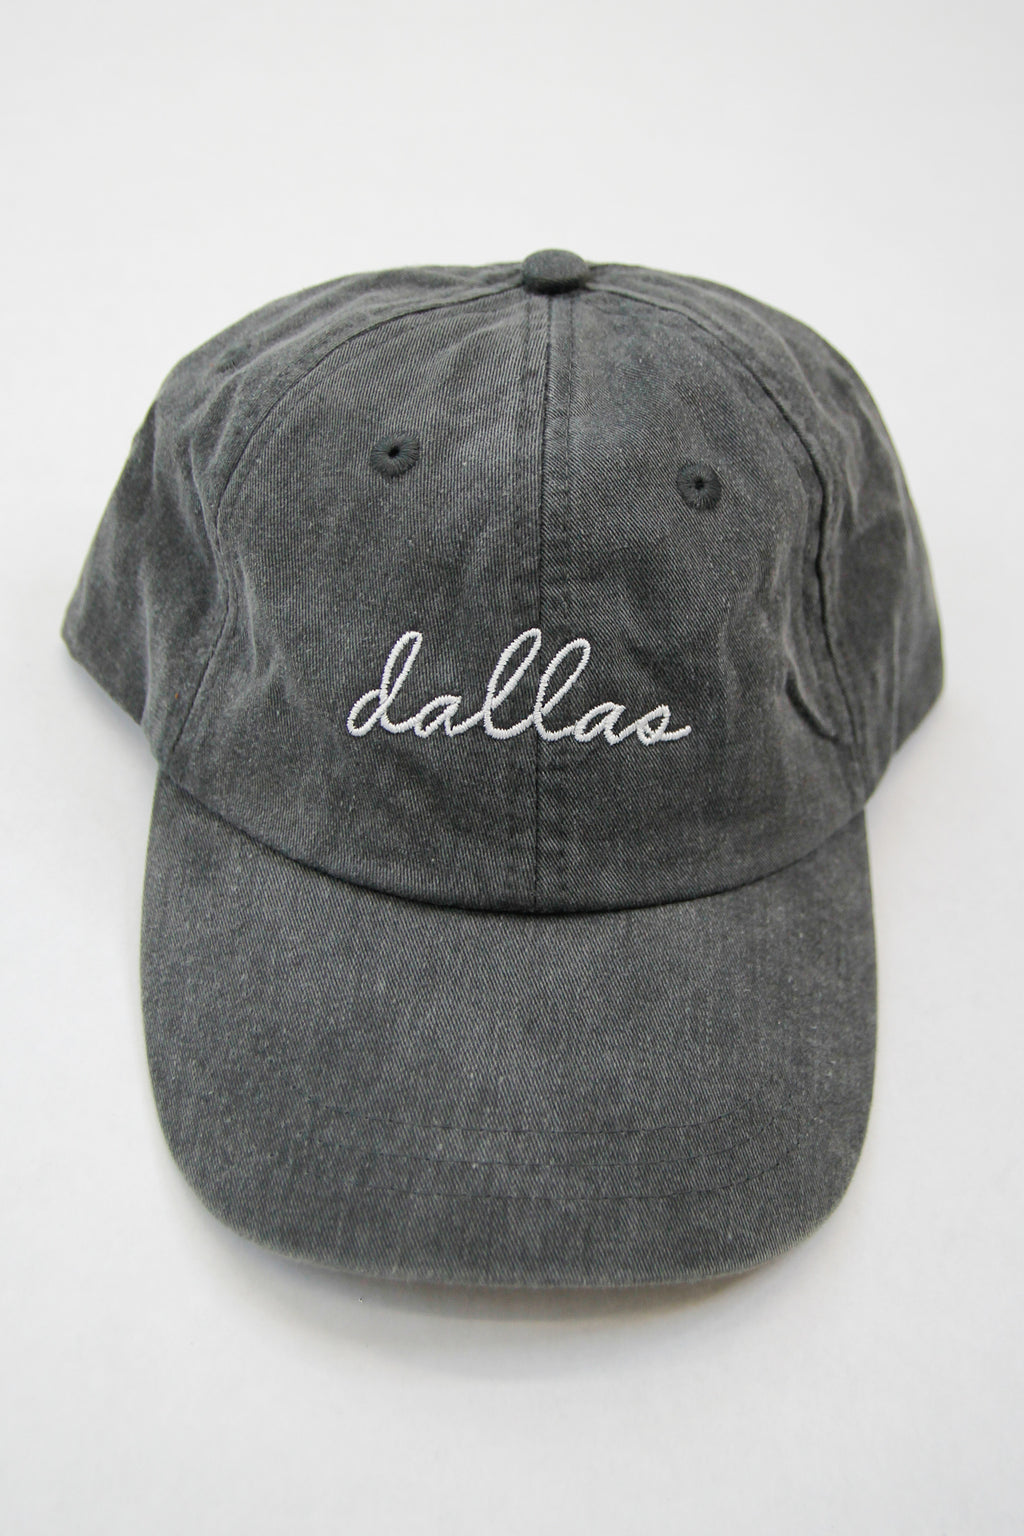 Dallas Ball Cap - Charcoal